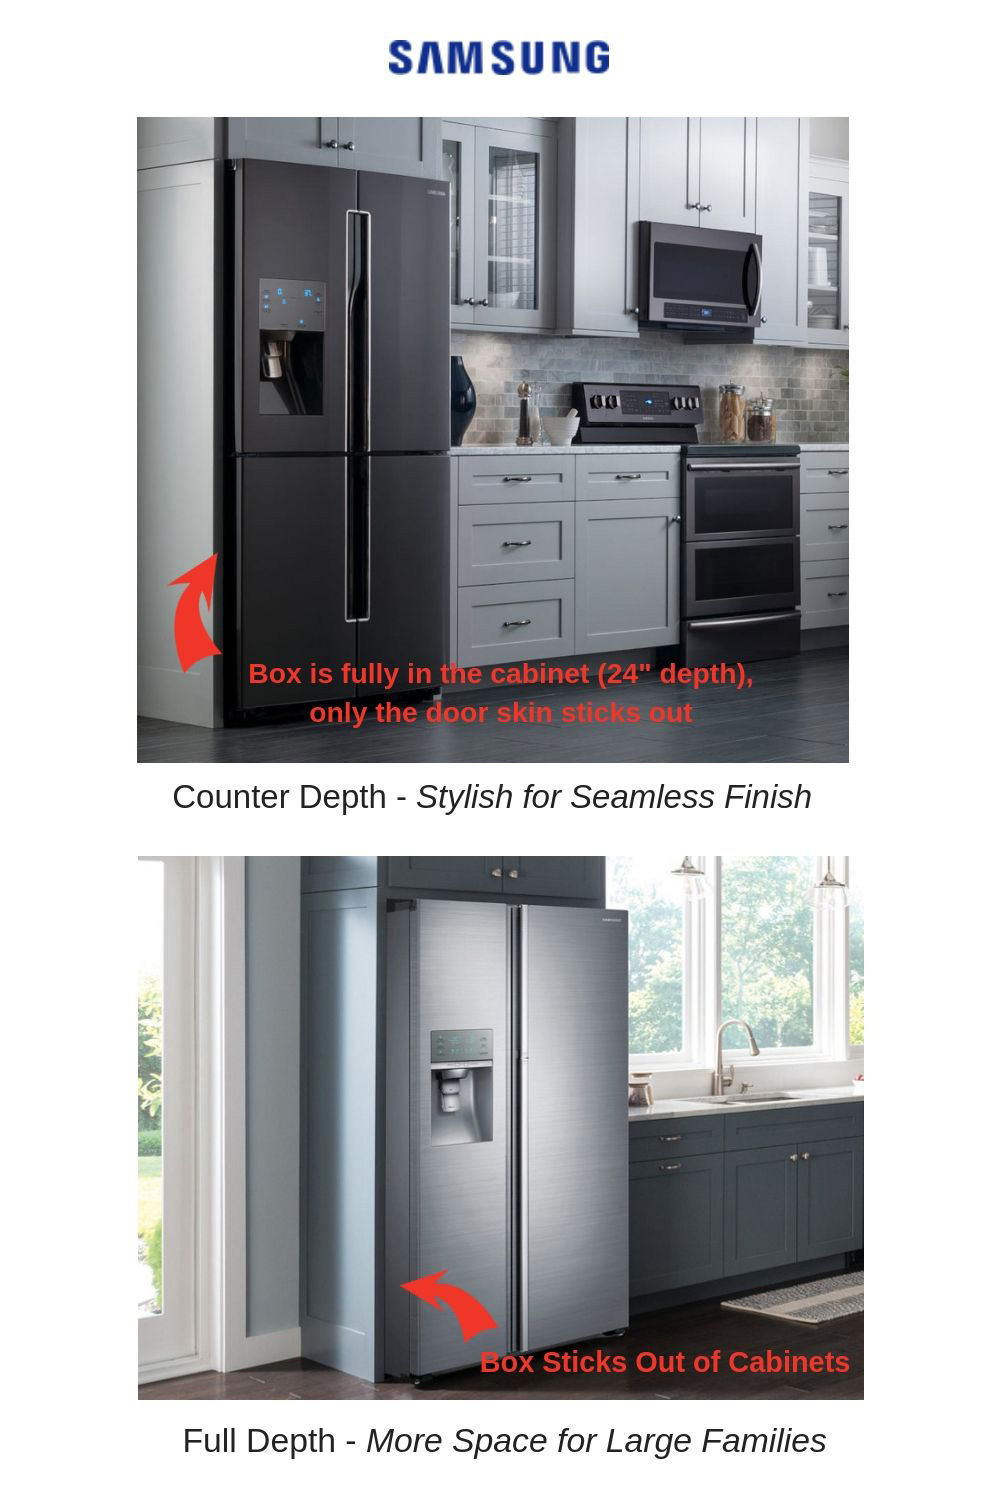 Counter-Depth-vs-Full-Depth-Refrigerator-Design